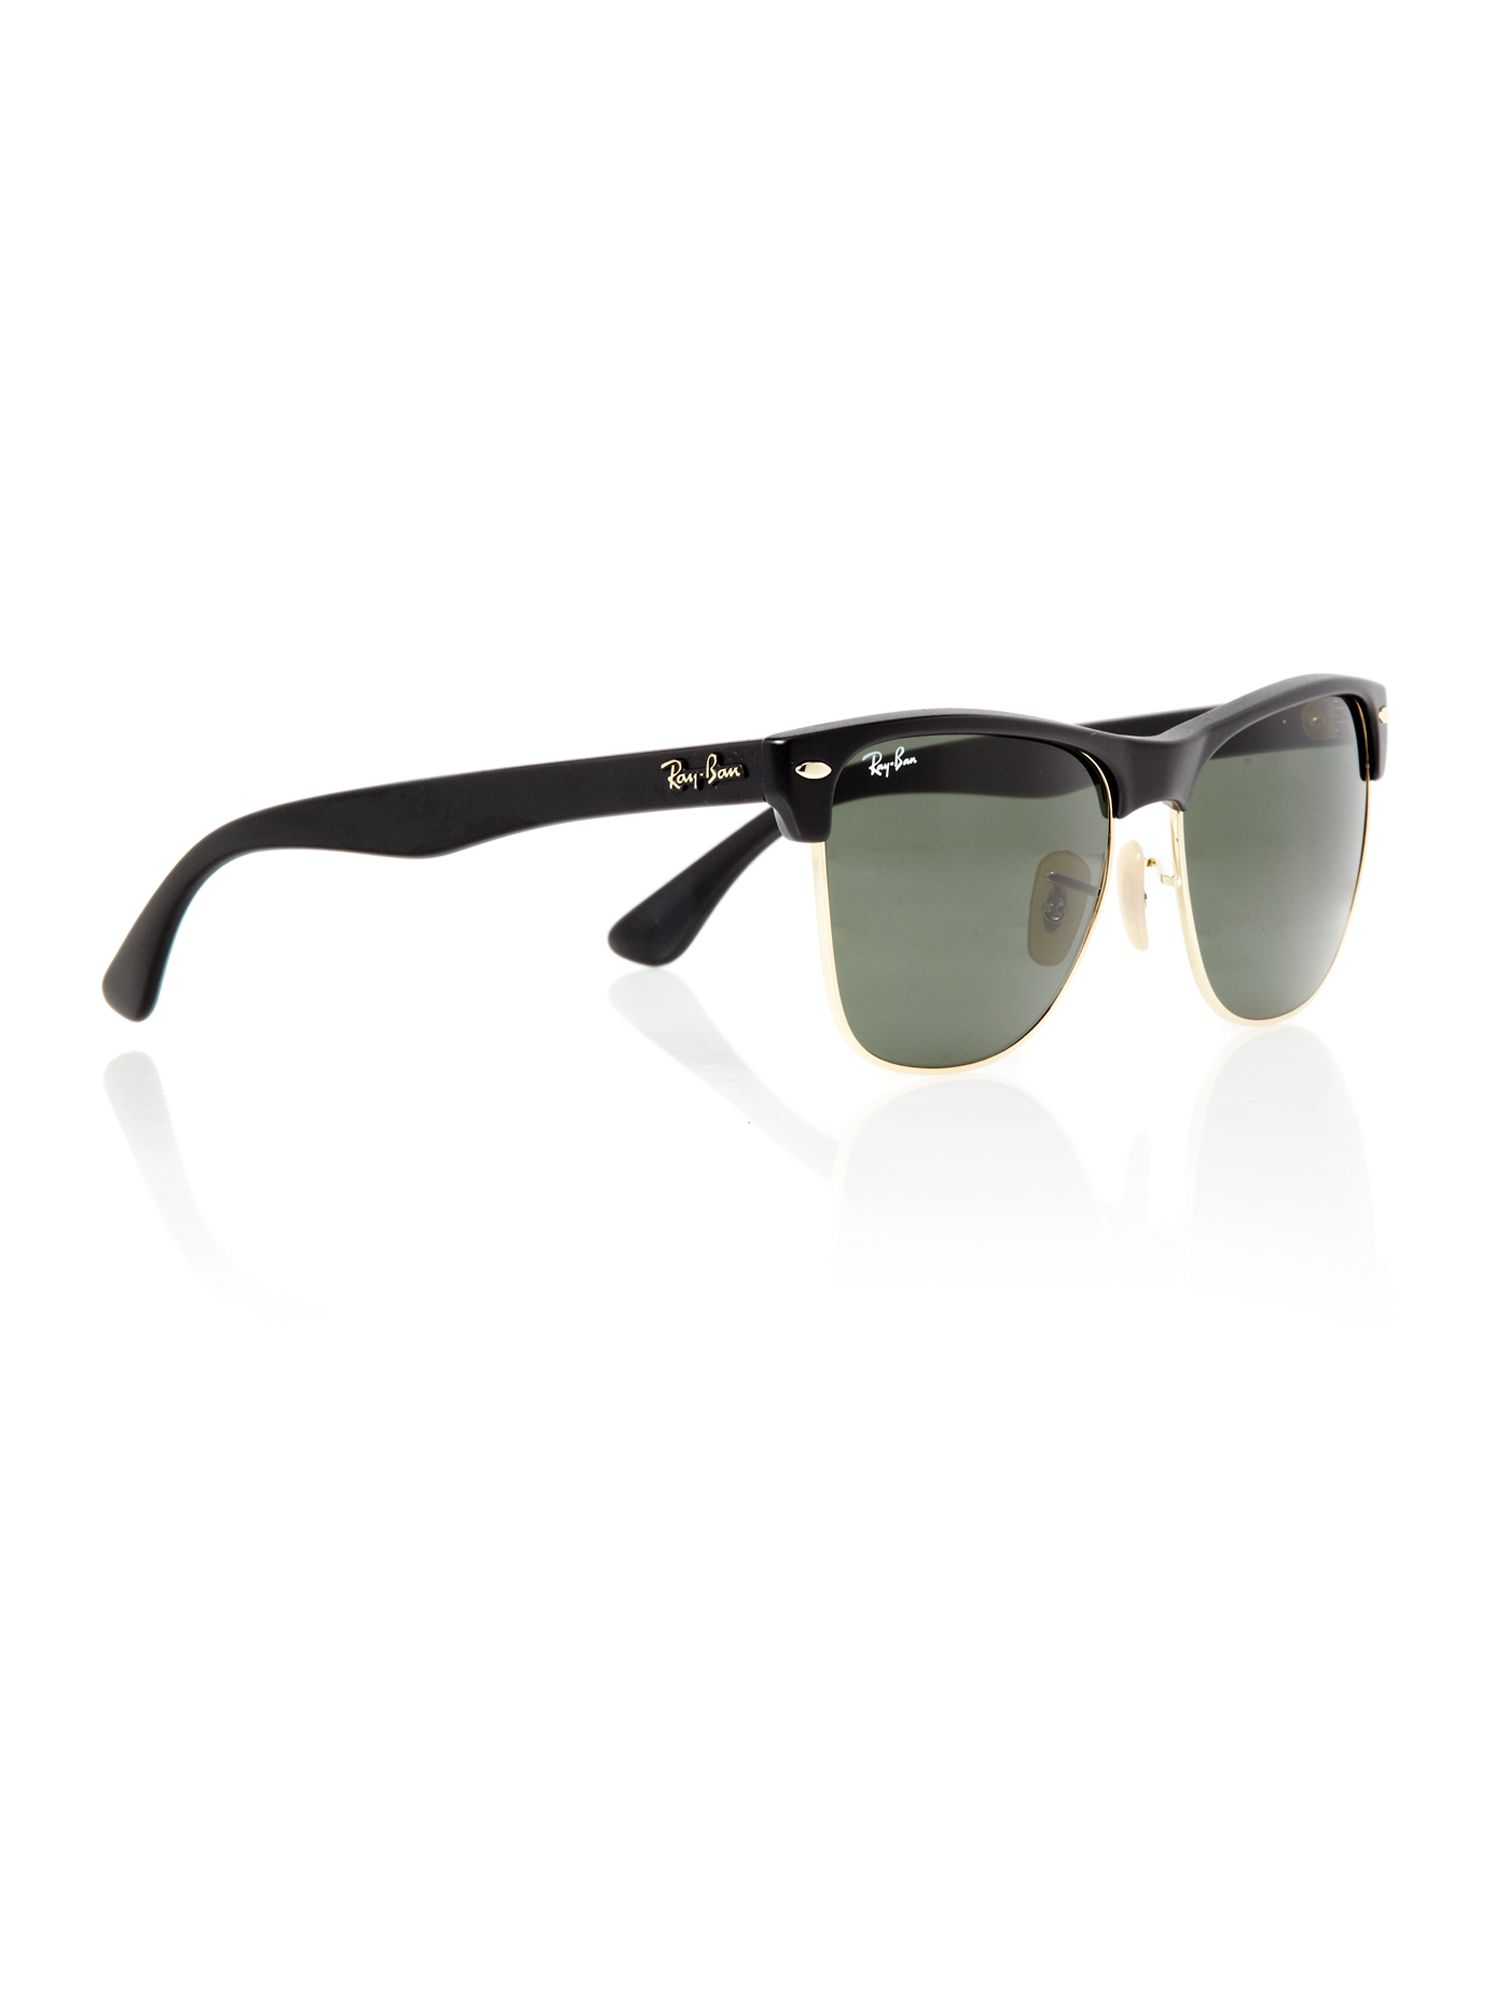 8b2826ddb9a4 coupon code for new ray bans sunglasses 2013 5c083 96a0d